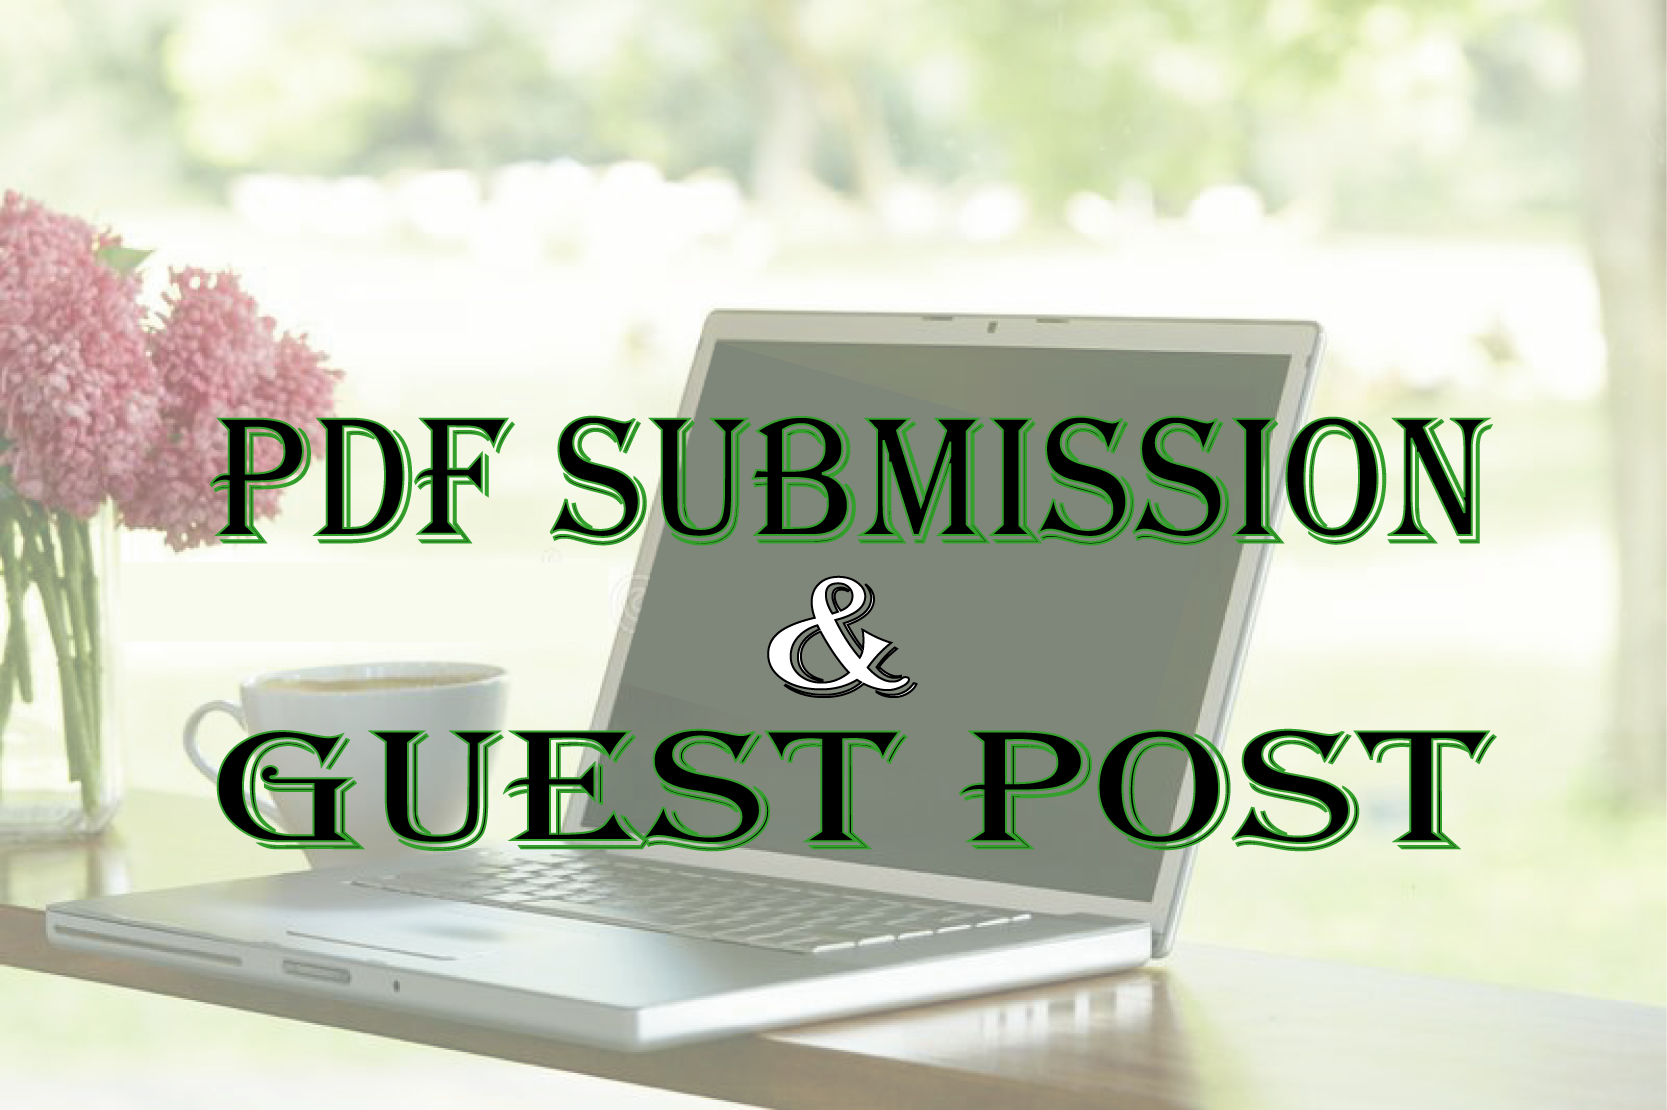 I will provide 5 Pdf Submission and 5 Guest post